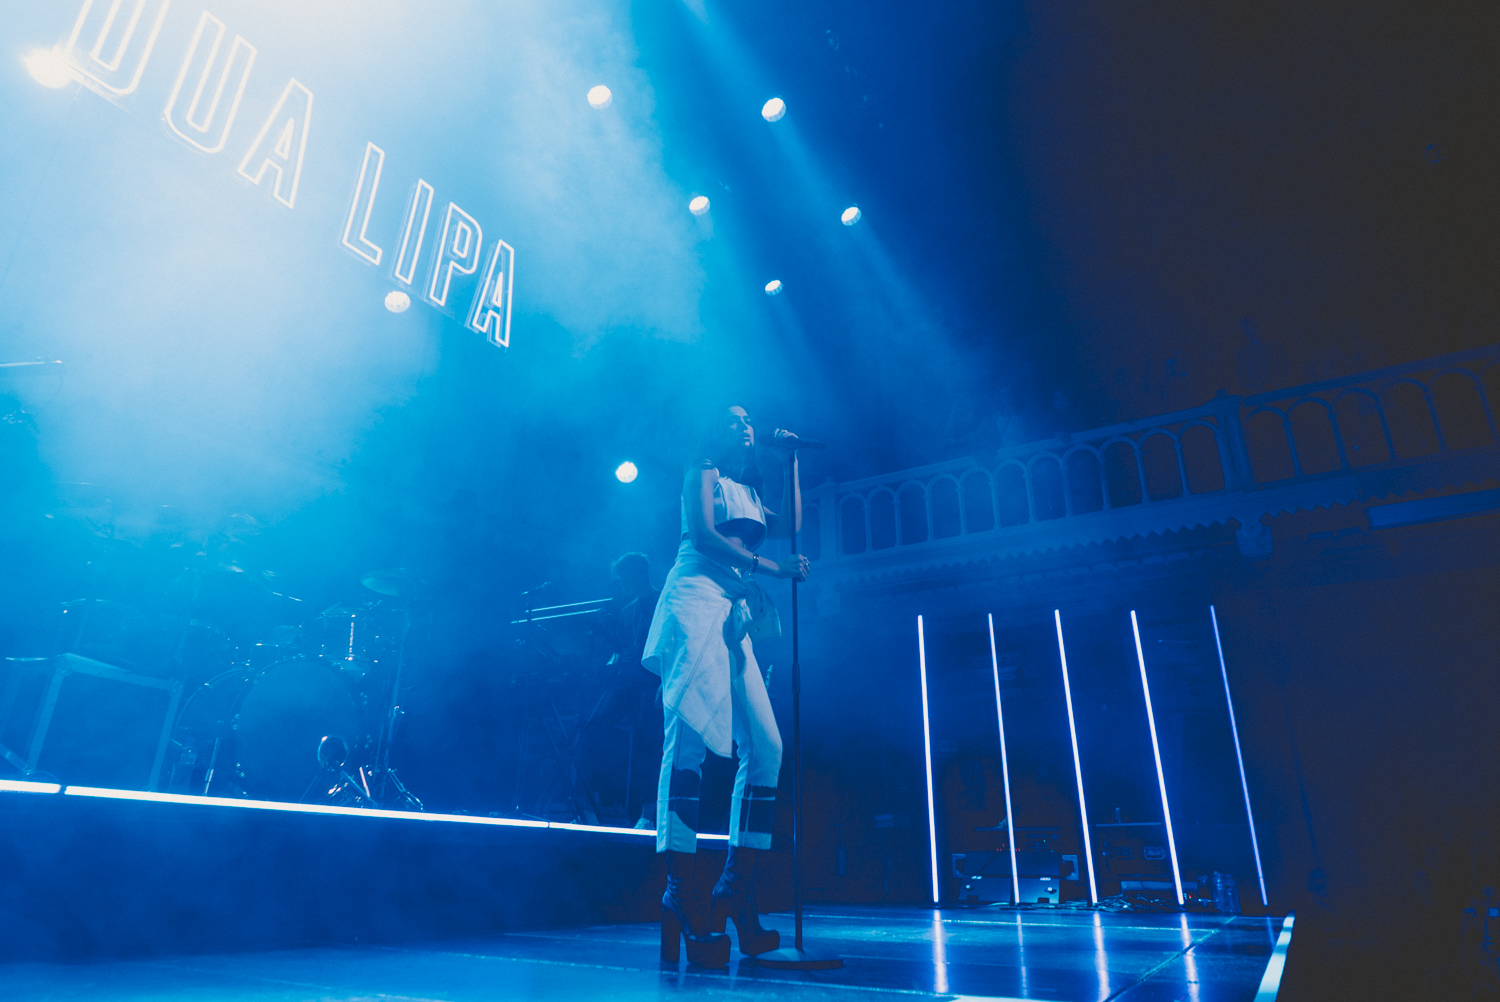 dua-lipa-amsterdam-by-pawel-ptak-23-of-38